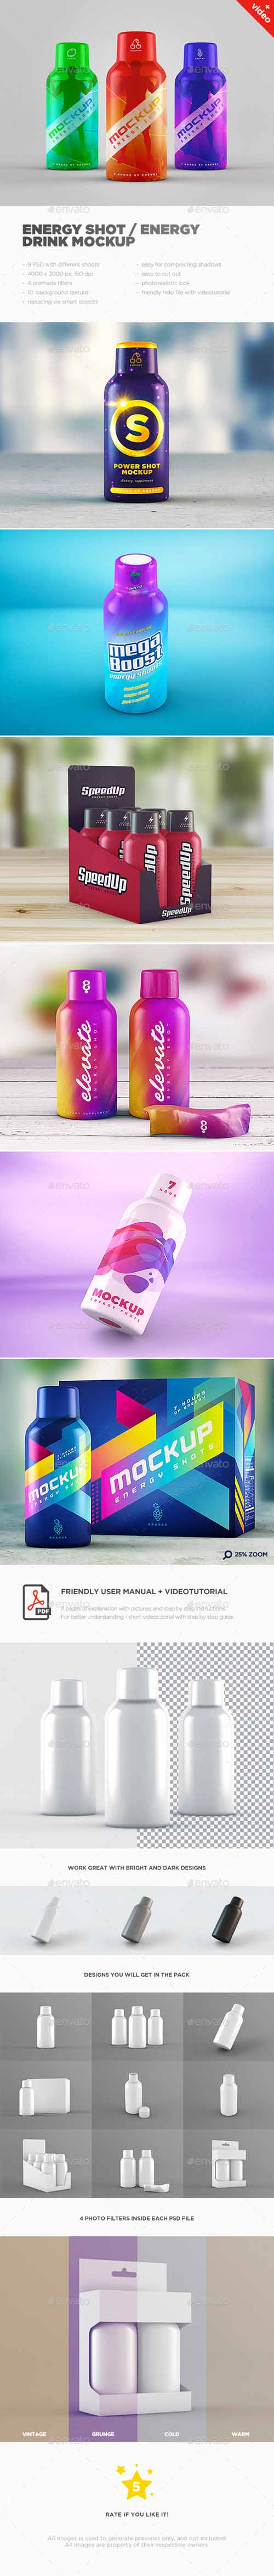 GR - Energy Shot / Energy Drink MockUp 14906526